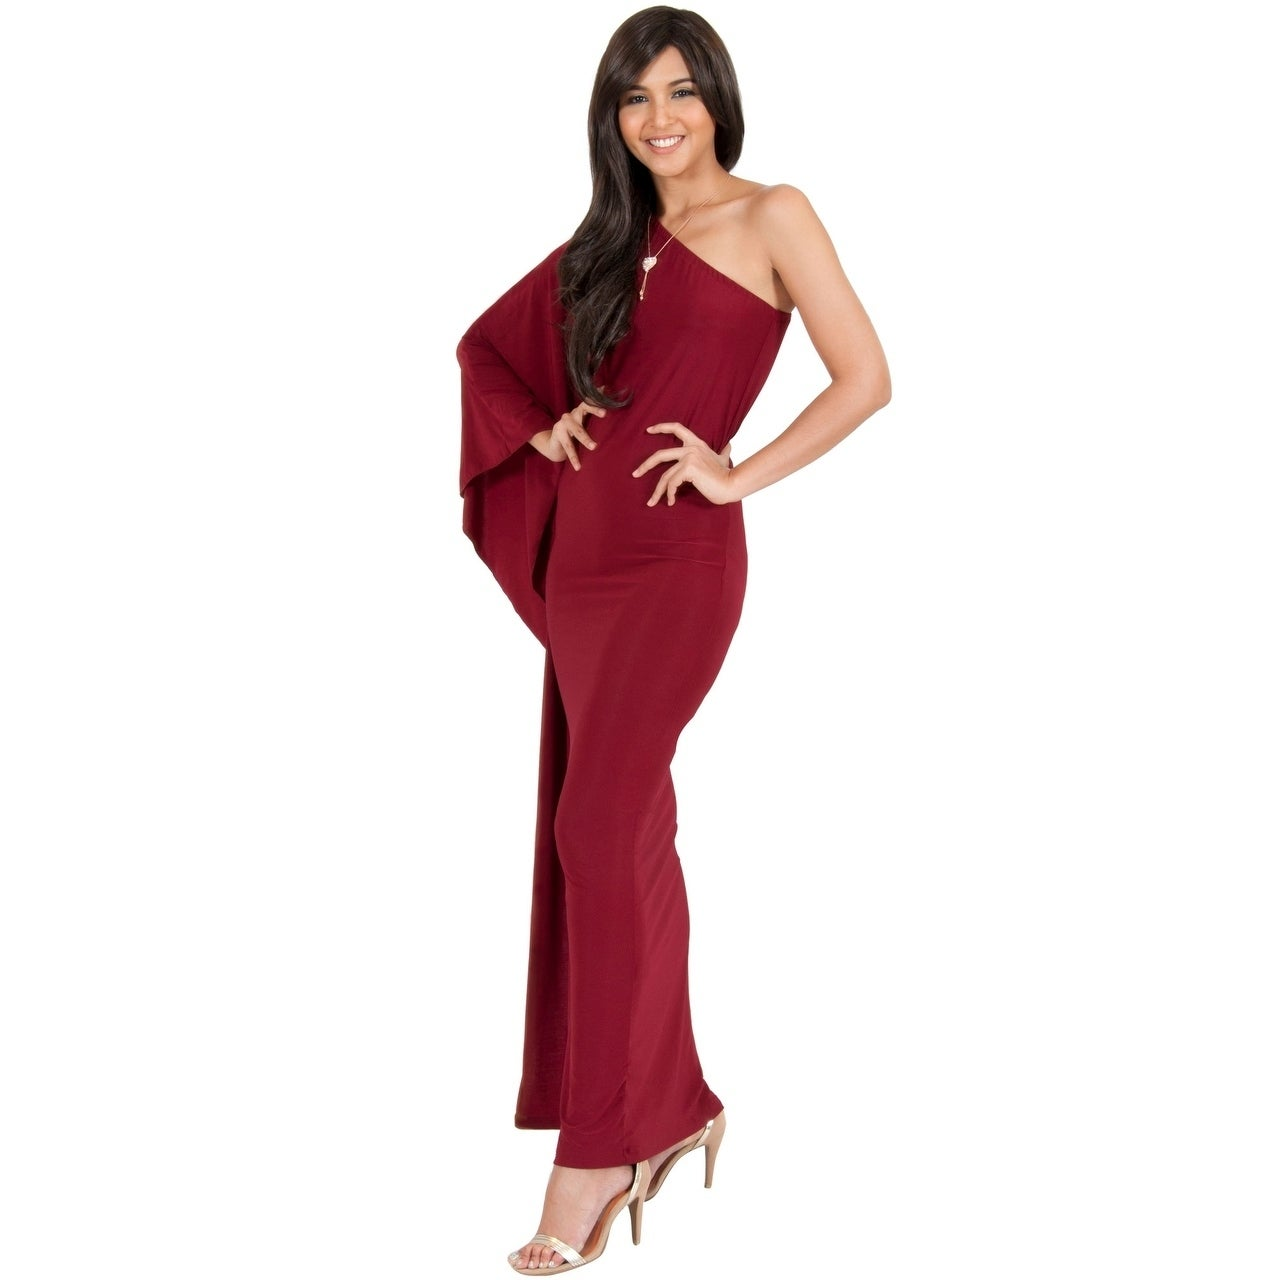 f70f483524f4 Shop KOH KOH Women One Shoulder Sleeve Slimming Cocktail Gown Maxi ...